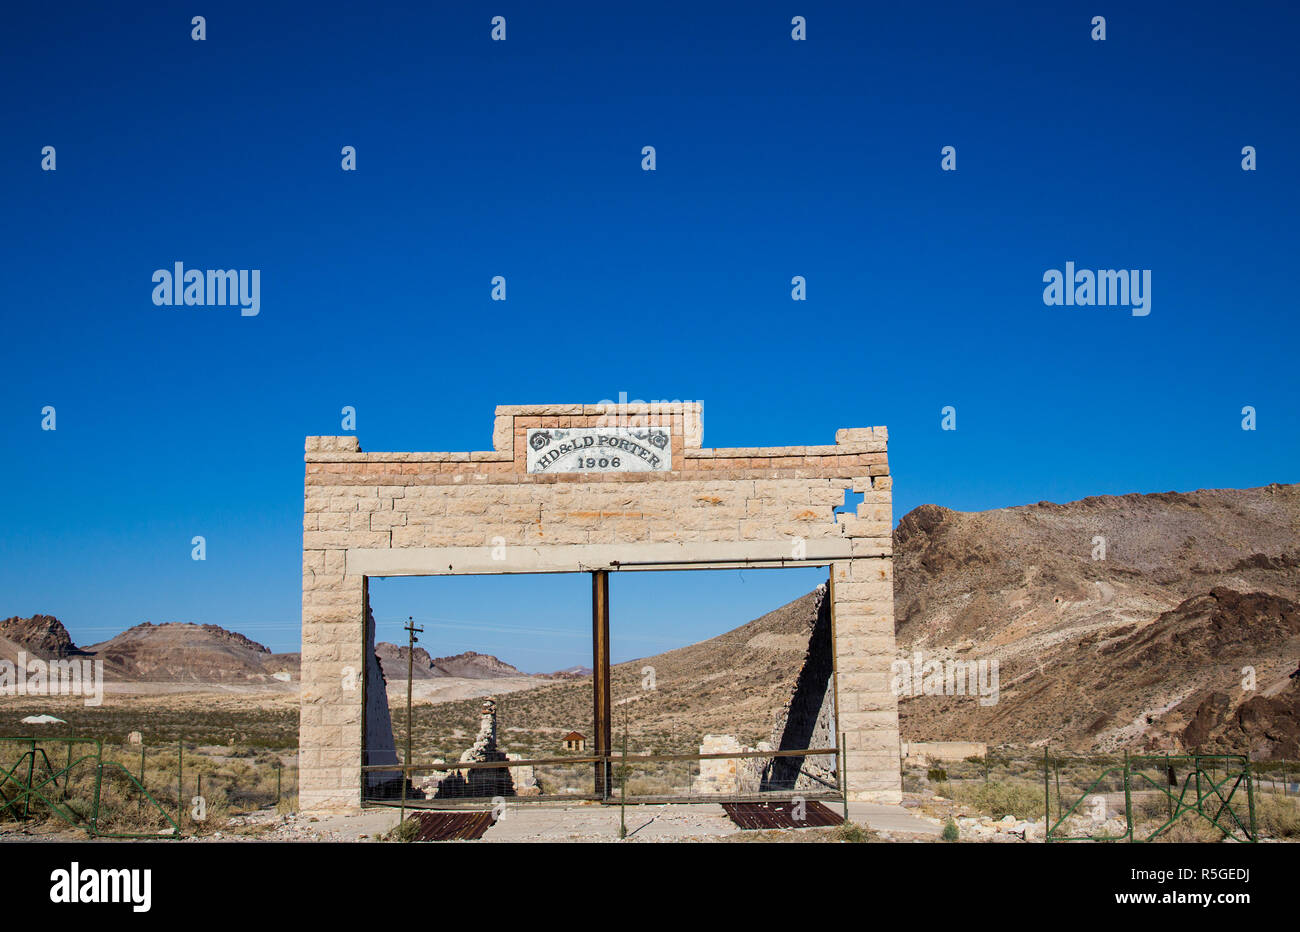 Rhyolite is a ghost town in Nye County, in the U.S. state of Nevada. It is in the Bullfrog Hills, about 120 miles northwest of Las Vegas, near the eas - Stock Image